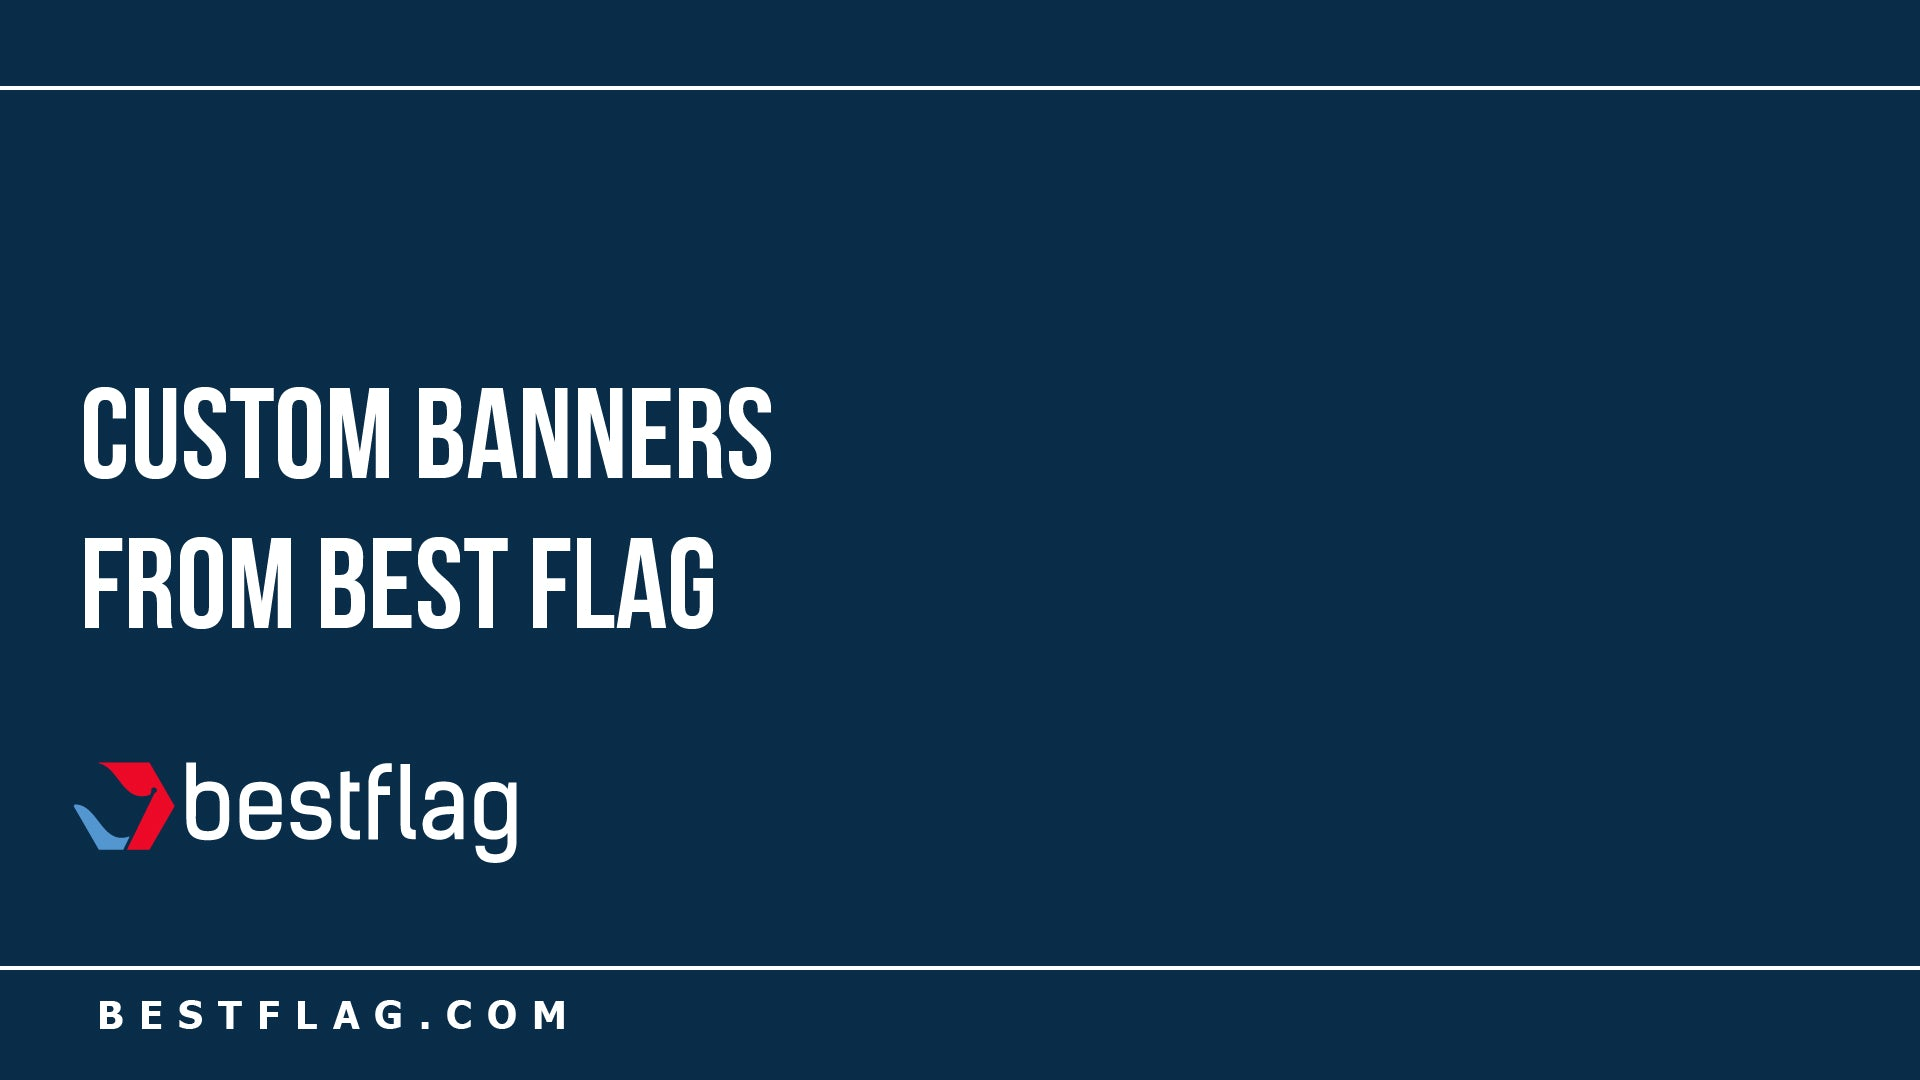 Custom Banners From Best Flag